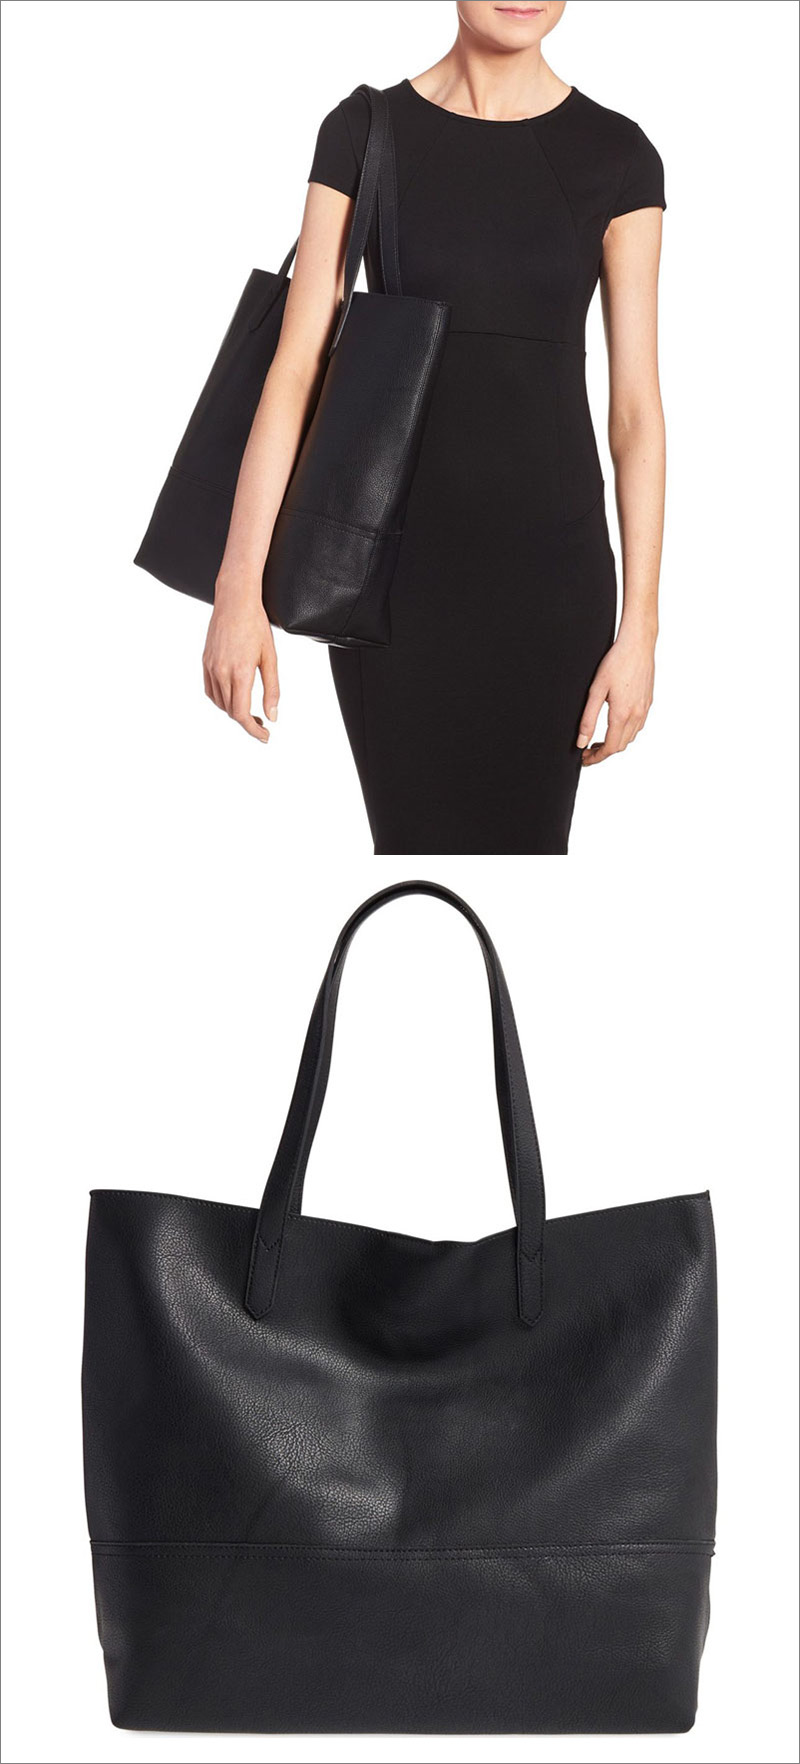 This modern black vegan leather tote is sophisticated and functional, making it perfect for work or a night out